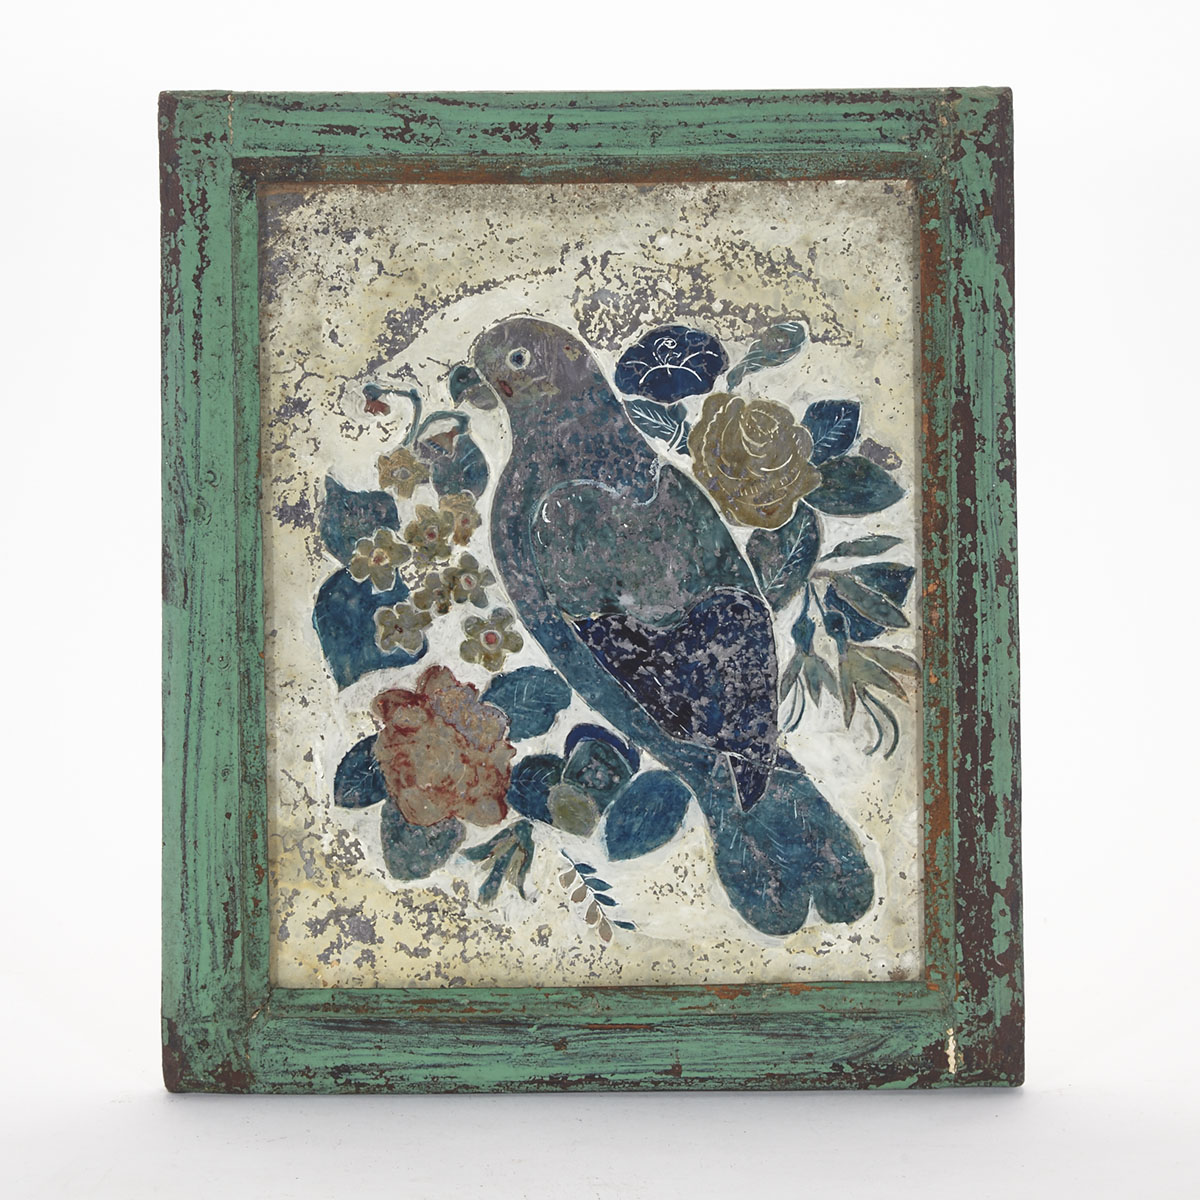 Victorian Tinsel Back Reverse Painting on Glass, mid 19th century